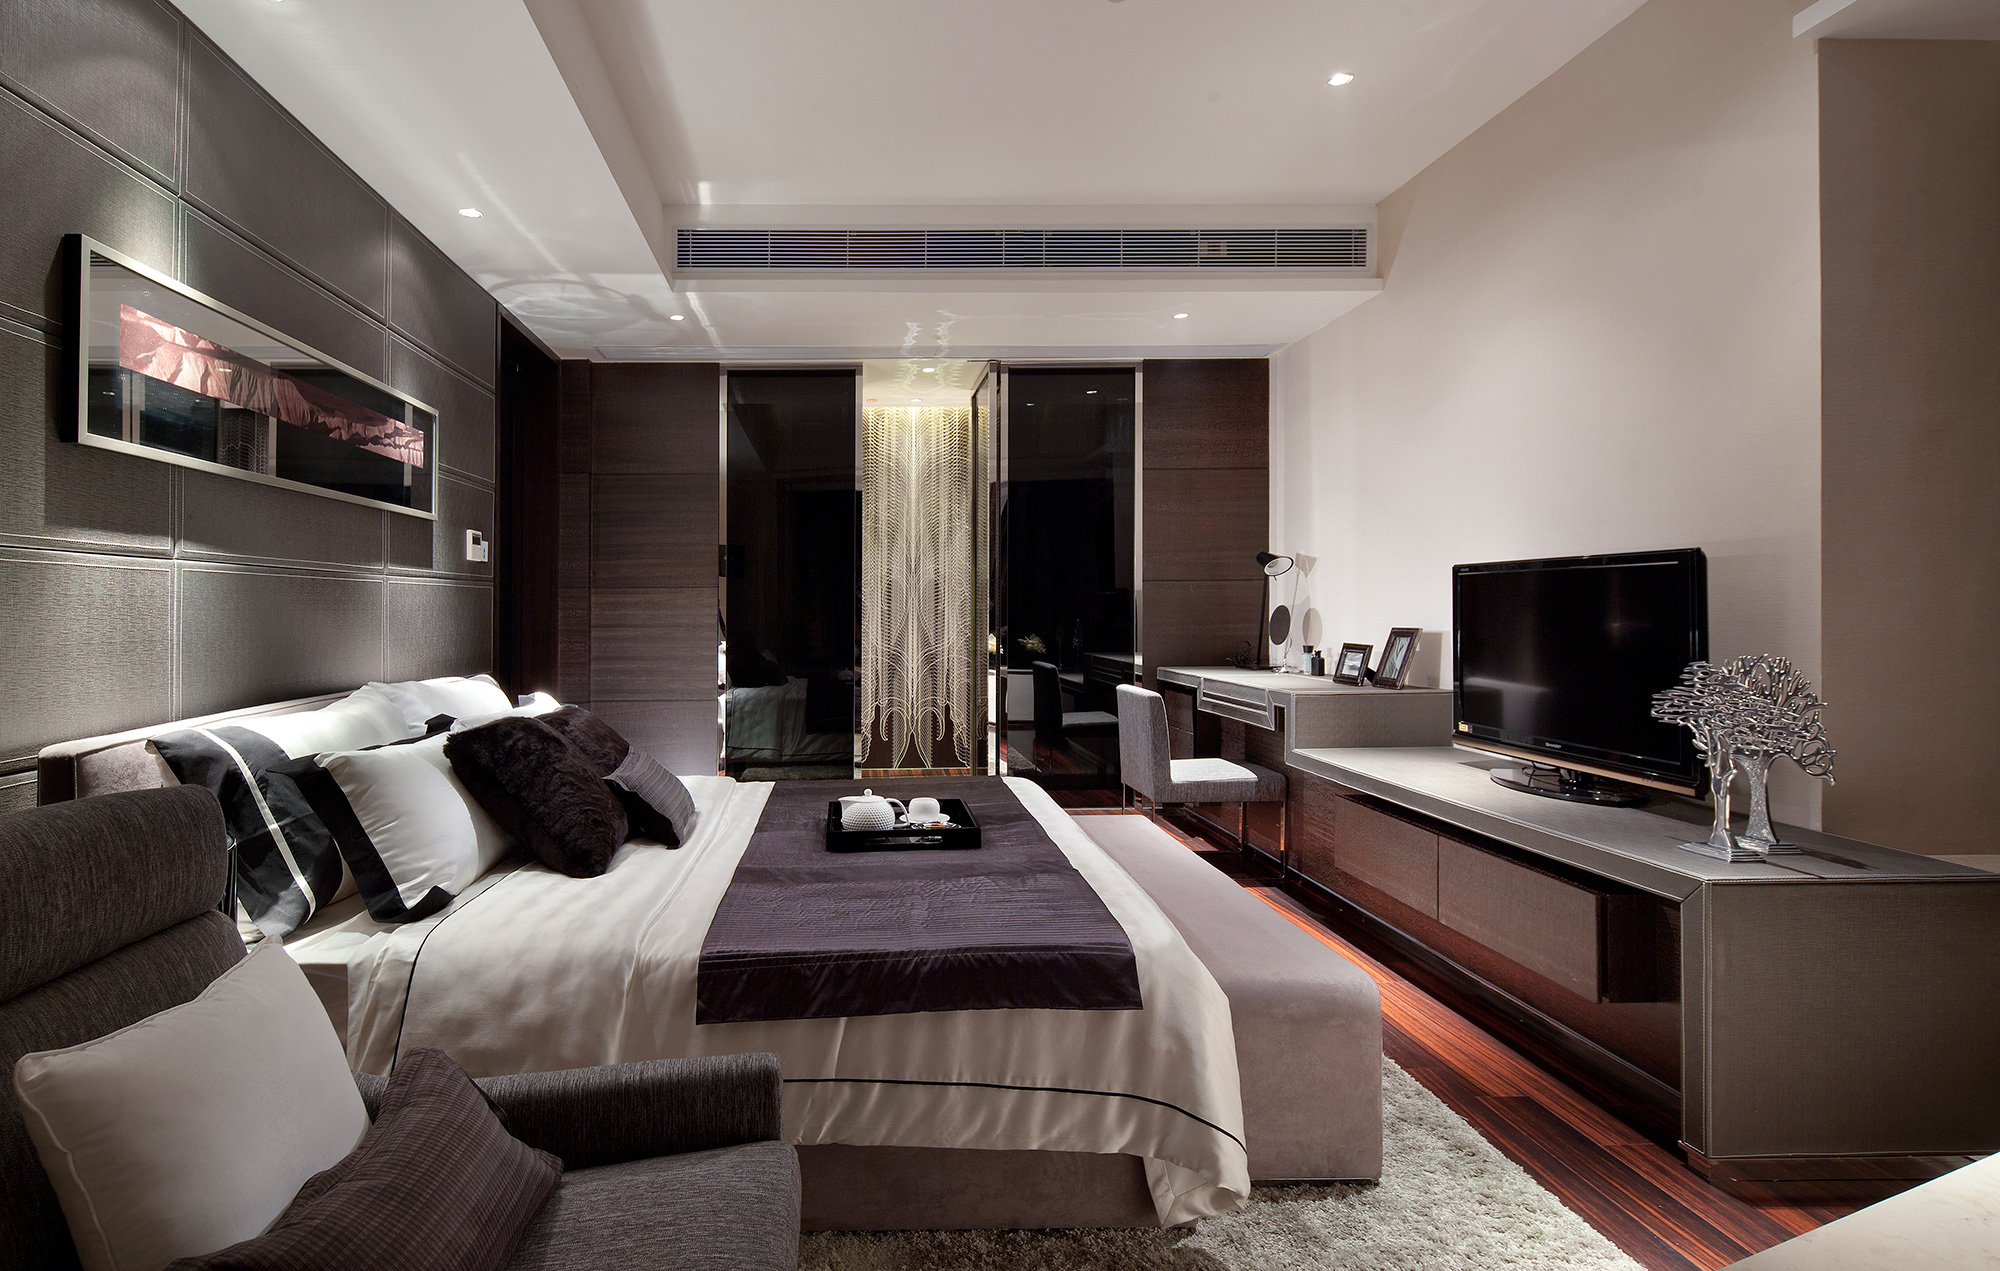 Synergistic modern spaces by steve leung for Luxury modern bedroom